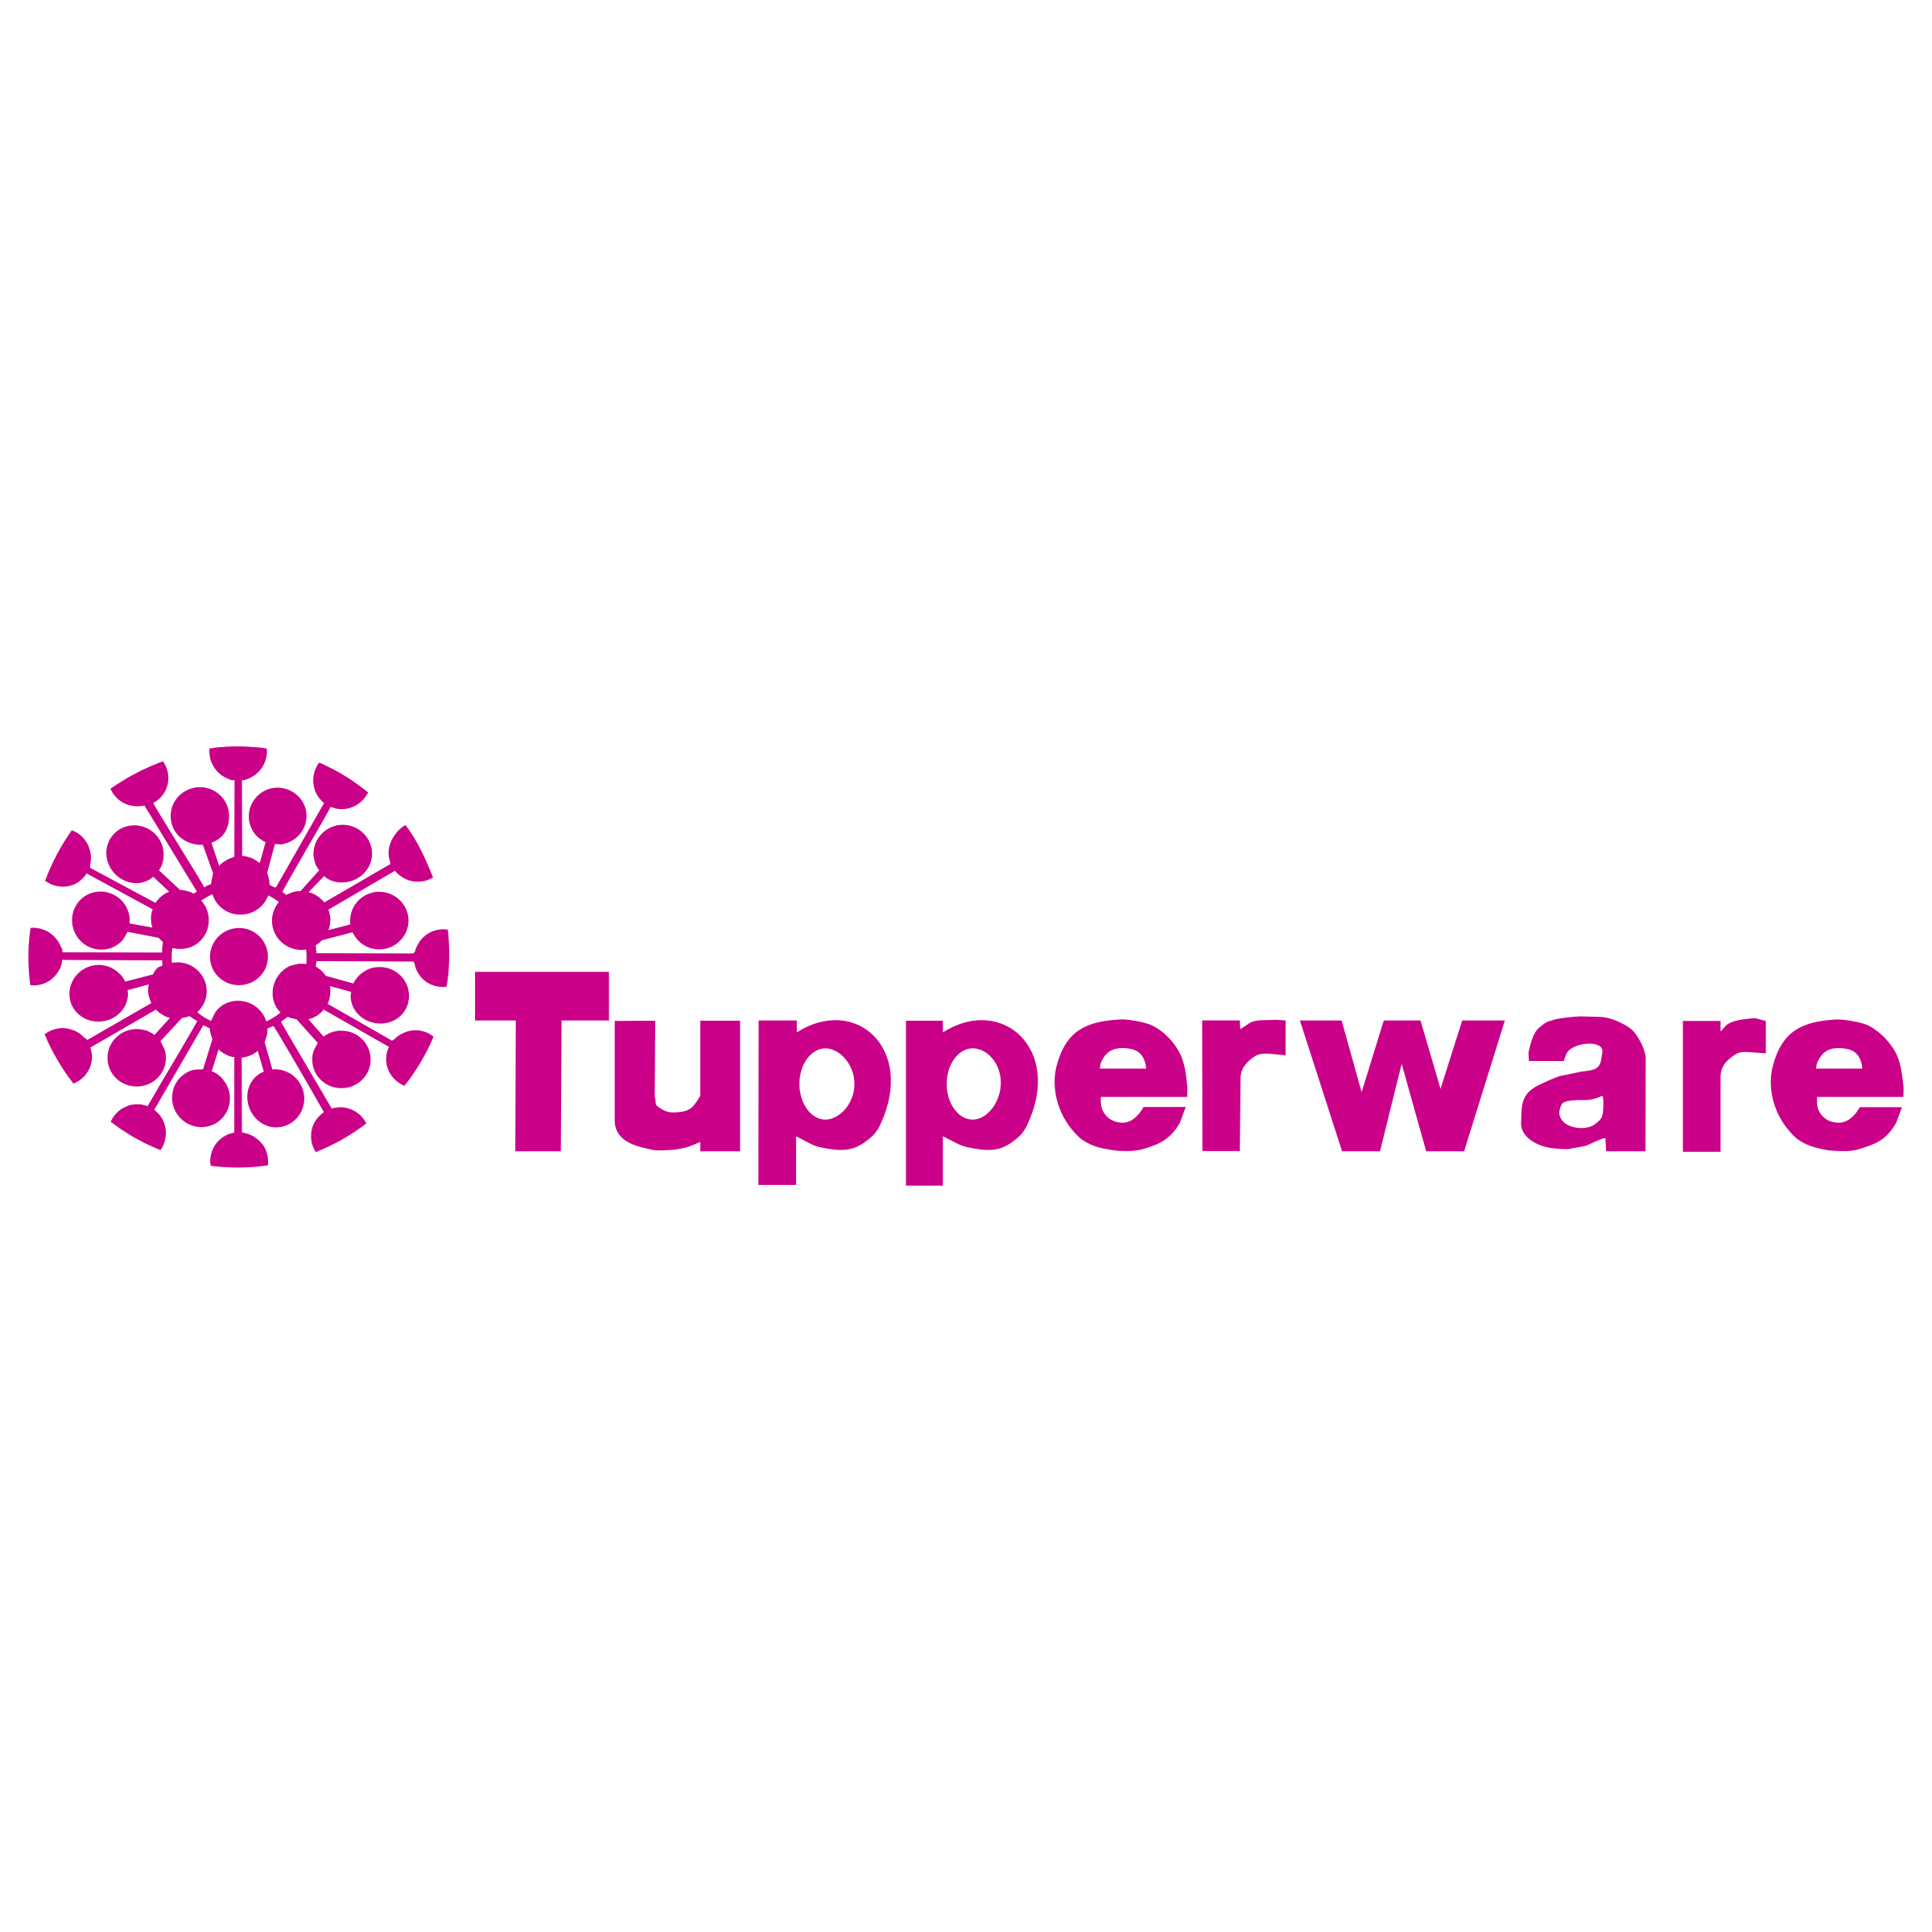 Tupperware Logo Png Transparent Amp Svg Vector Freebie Supply